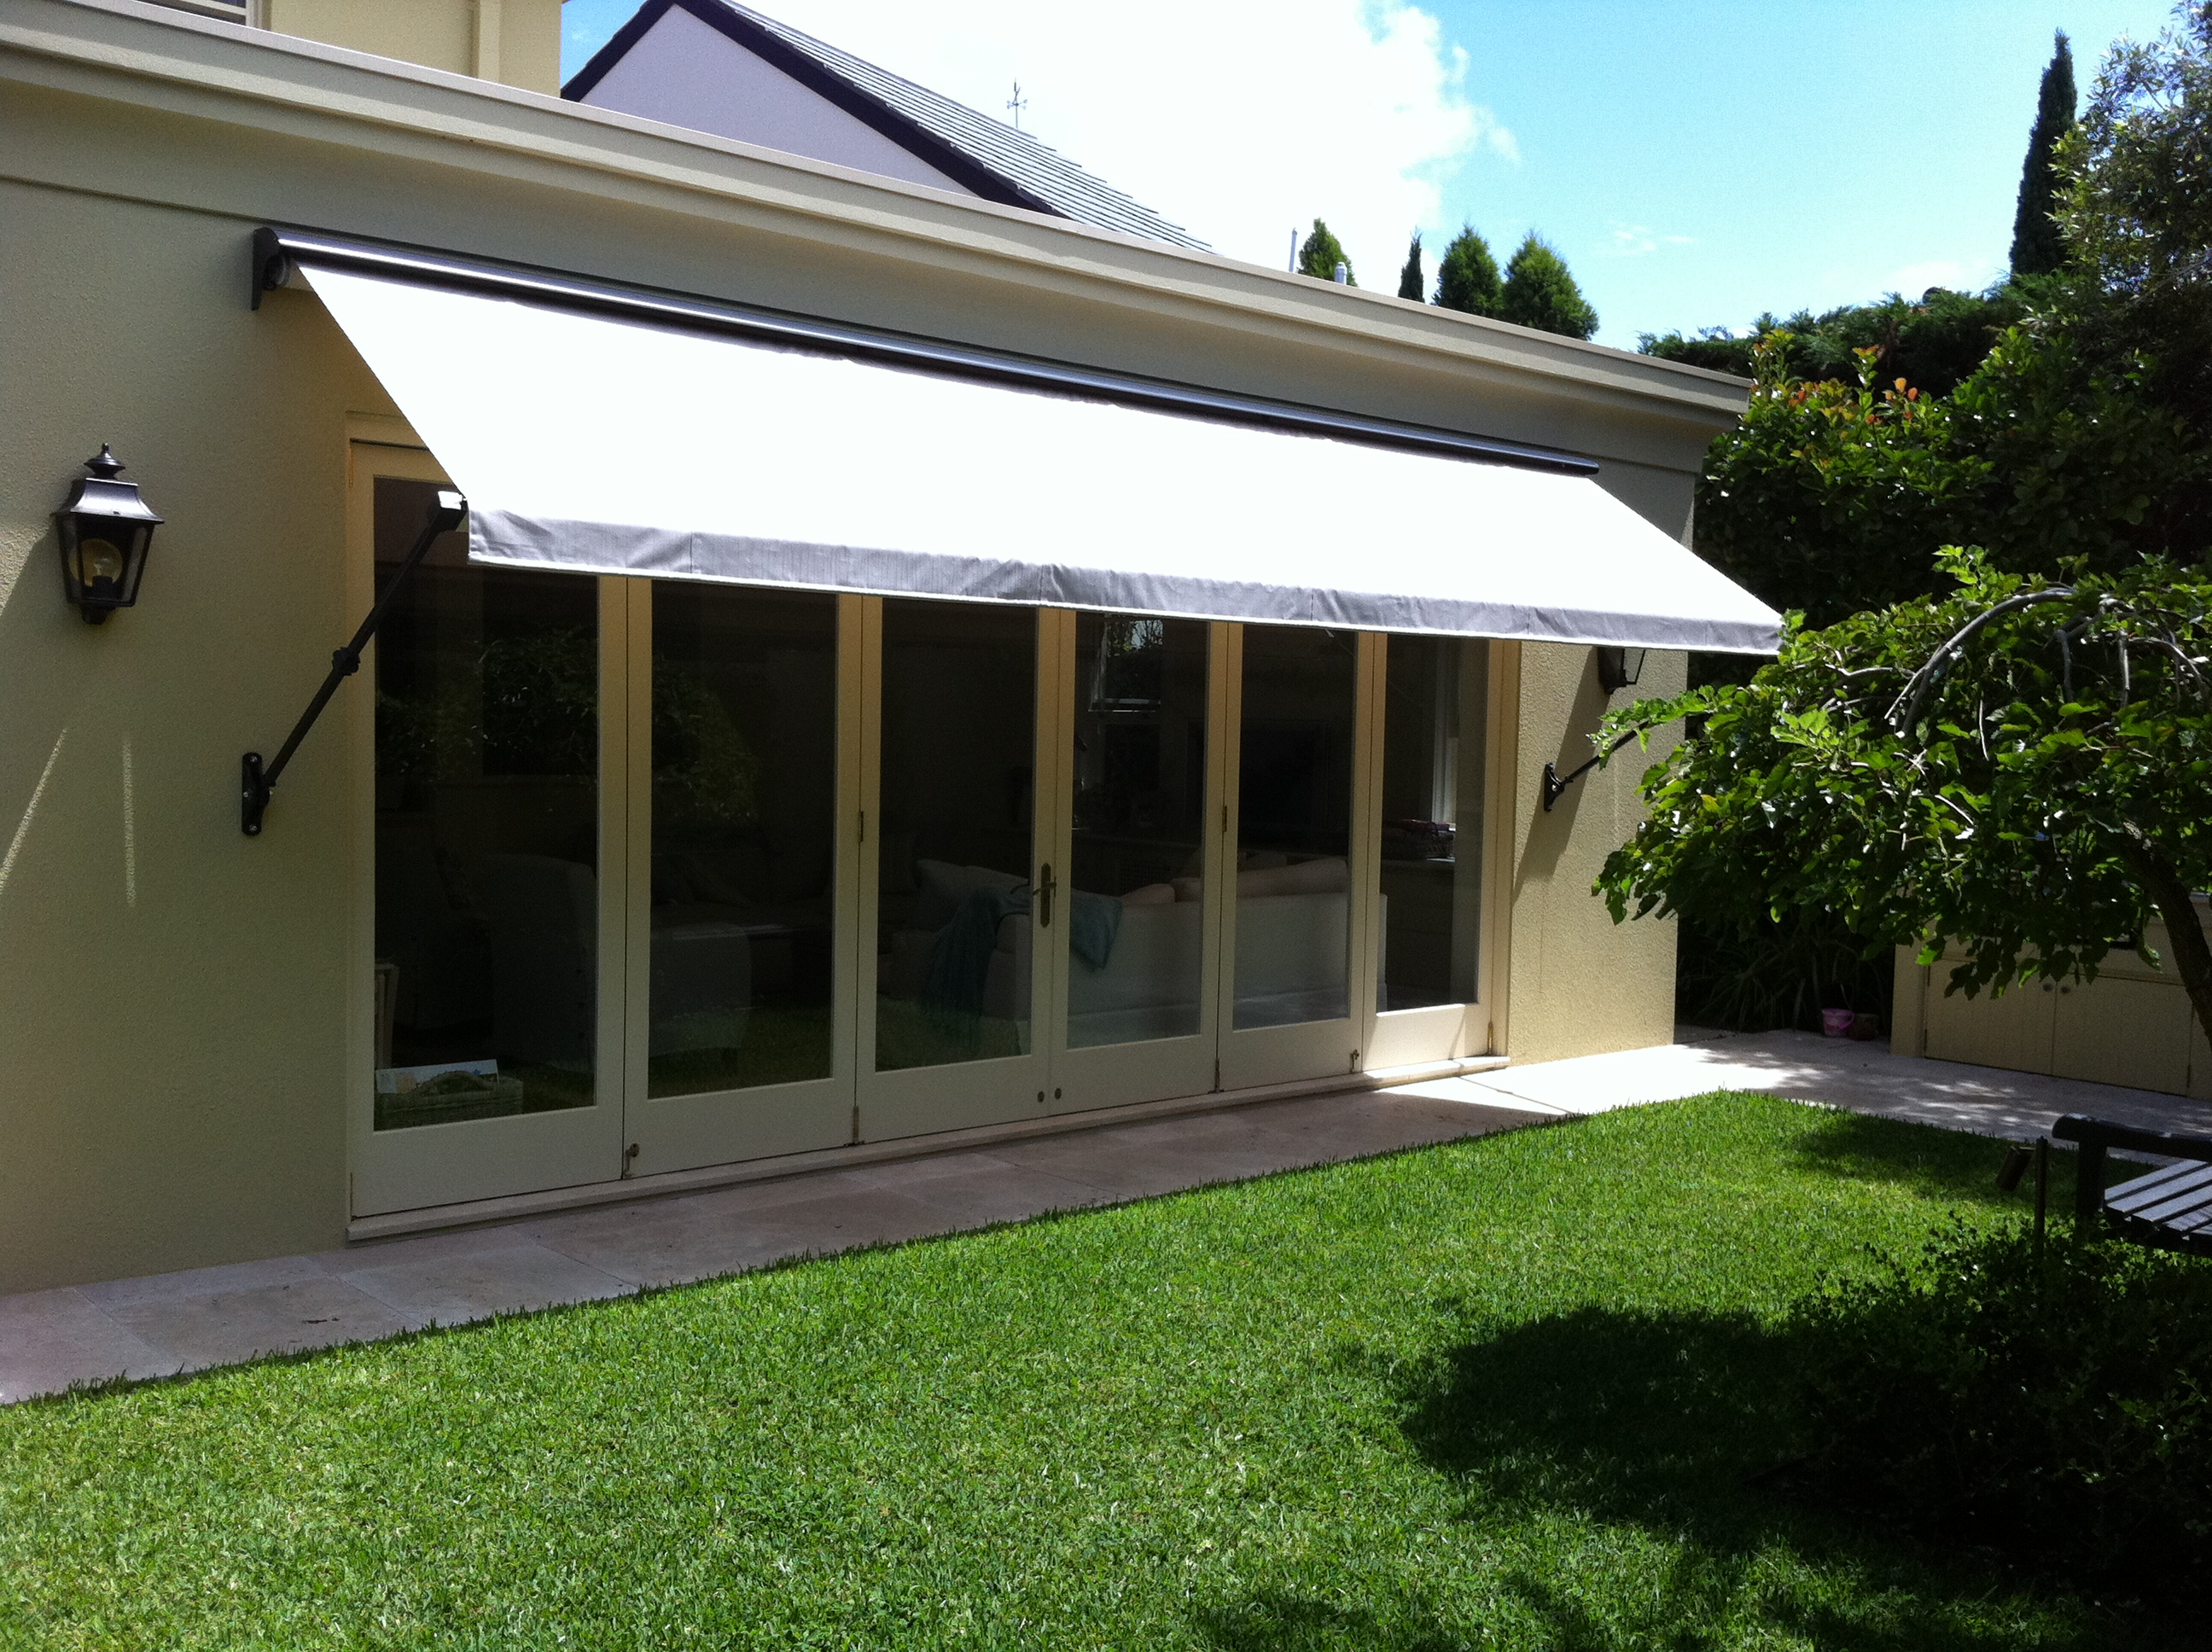 window on us book styles custom melbourne outdoor options awnings a of in consultation free to blinds awning roller and types for all contact